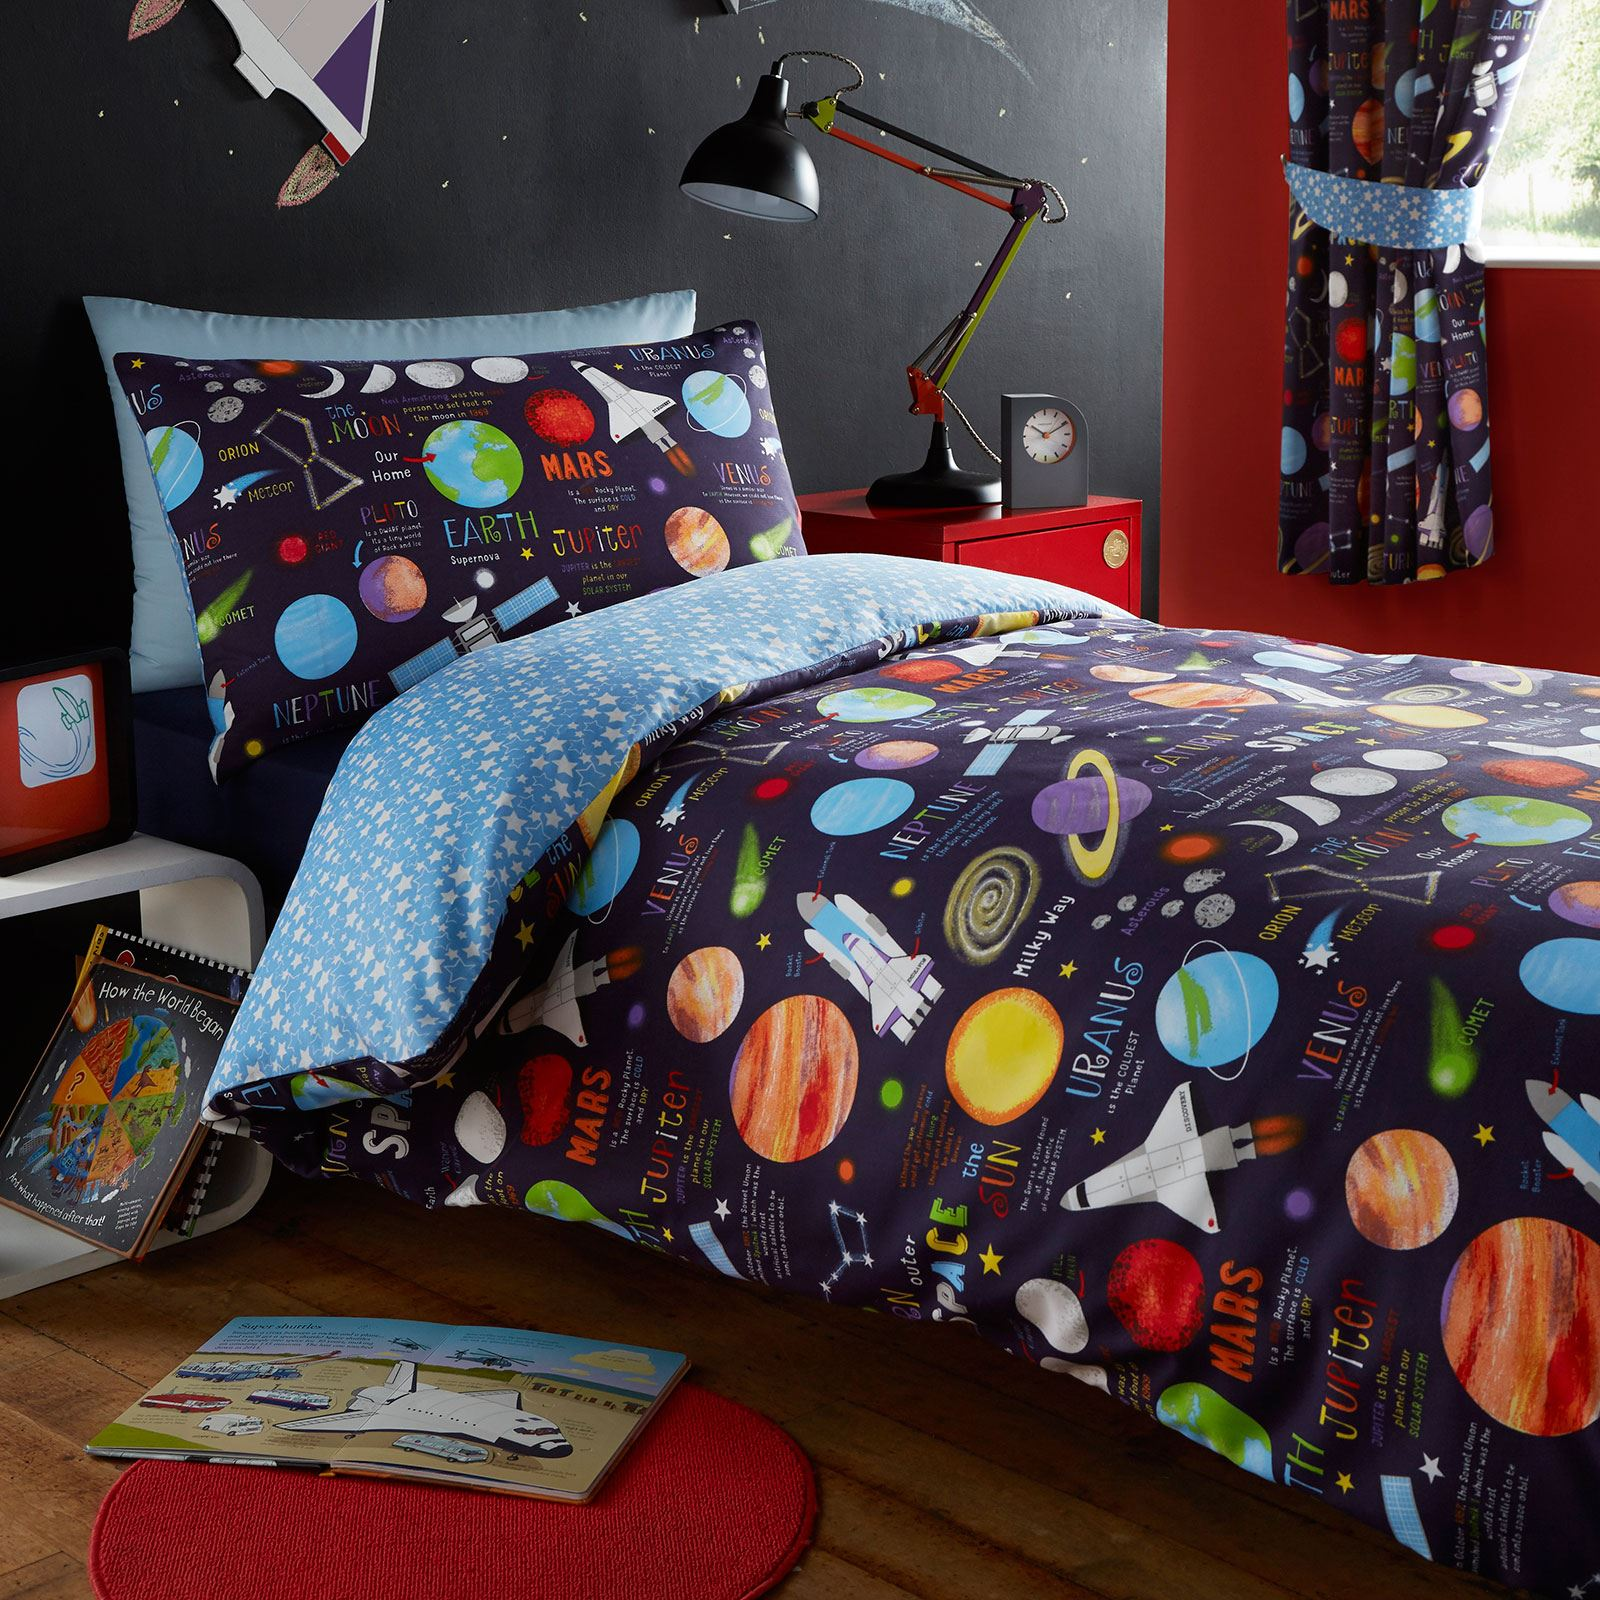 Details about PLANETS SPACE SINGLE DUVET COVER SET - KIDS 2 IN 1 REVERSIBLE  BEDROOM BEDDING